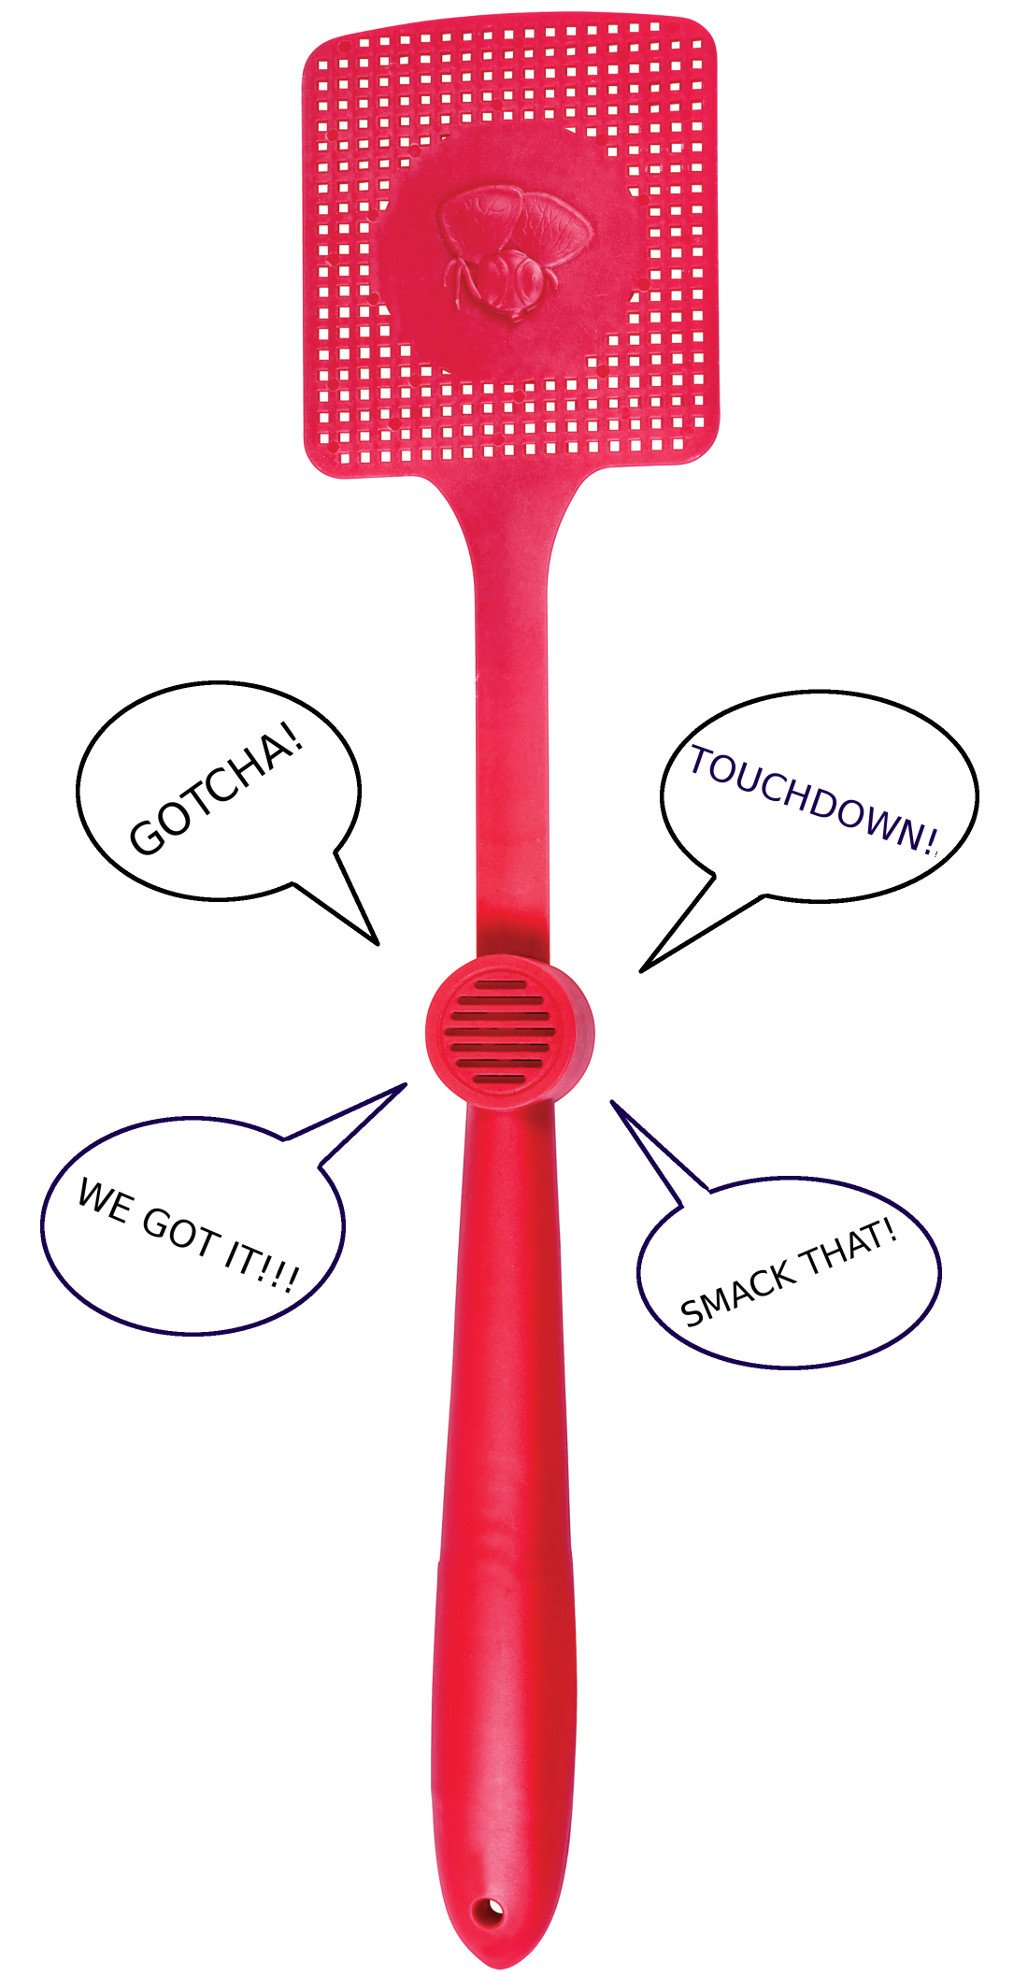 Talking Fly Swatter - Novelty Funny Swatter With Built In Speaker Speaks 5 Phrases Pest Control Plastic Swat For Home Or Office Colors VARY